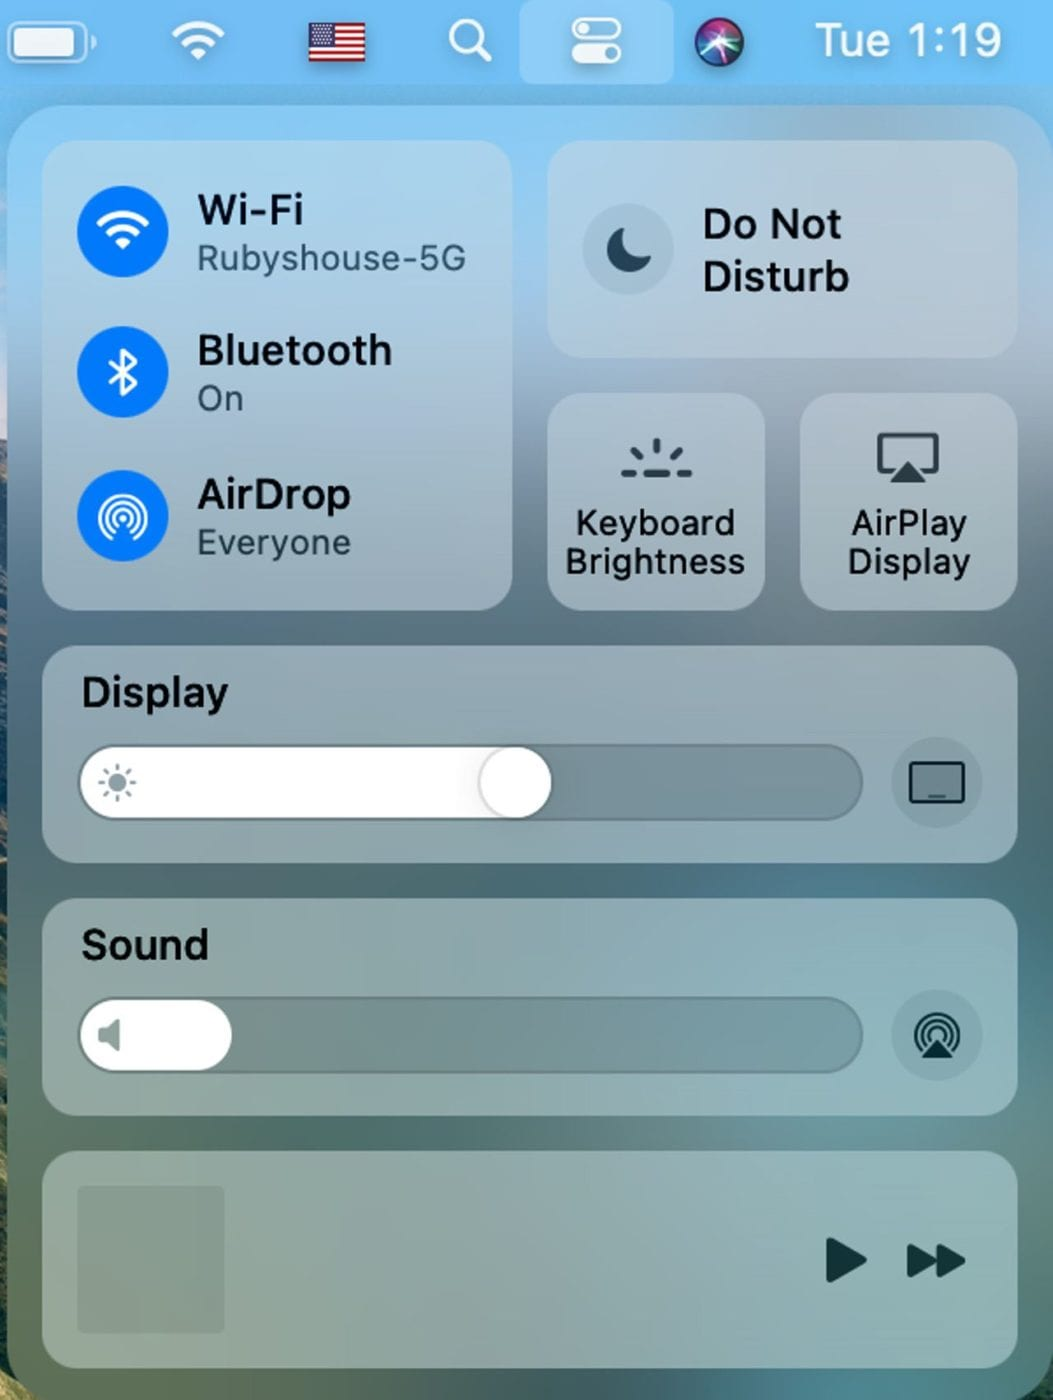 Big Sur's new Control Center puts many settings just a click away